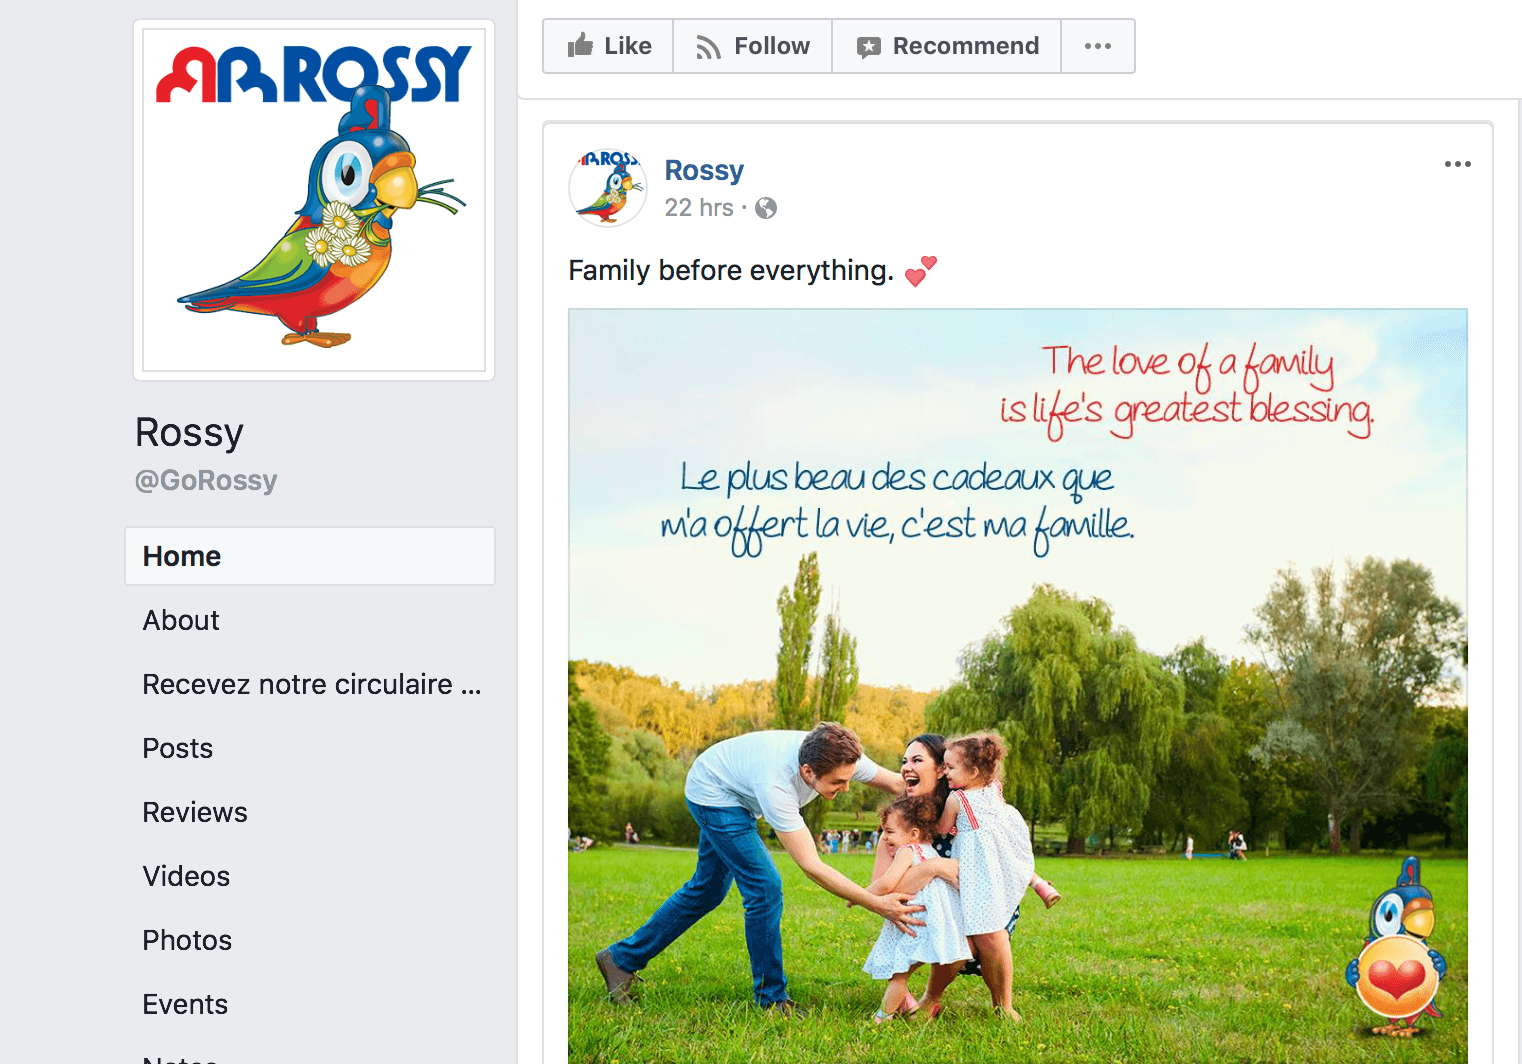 Facebook rossy - Marketing tips